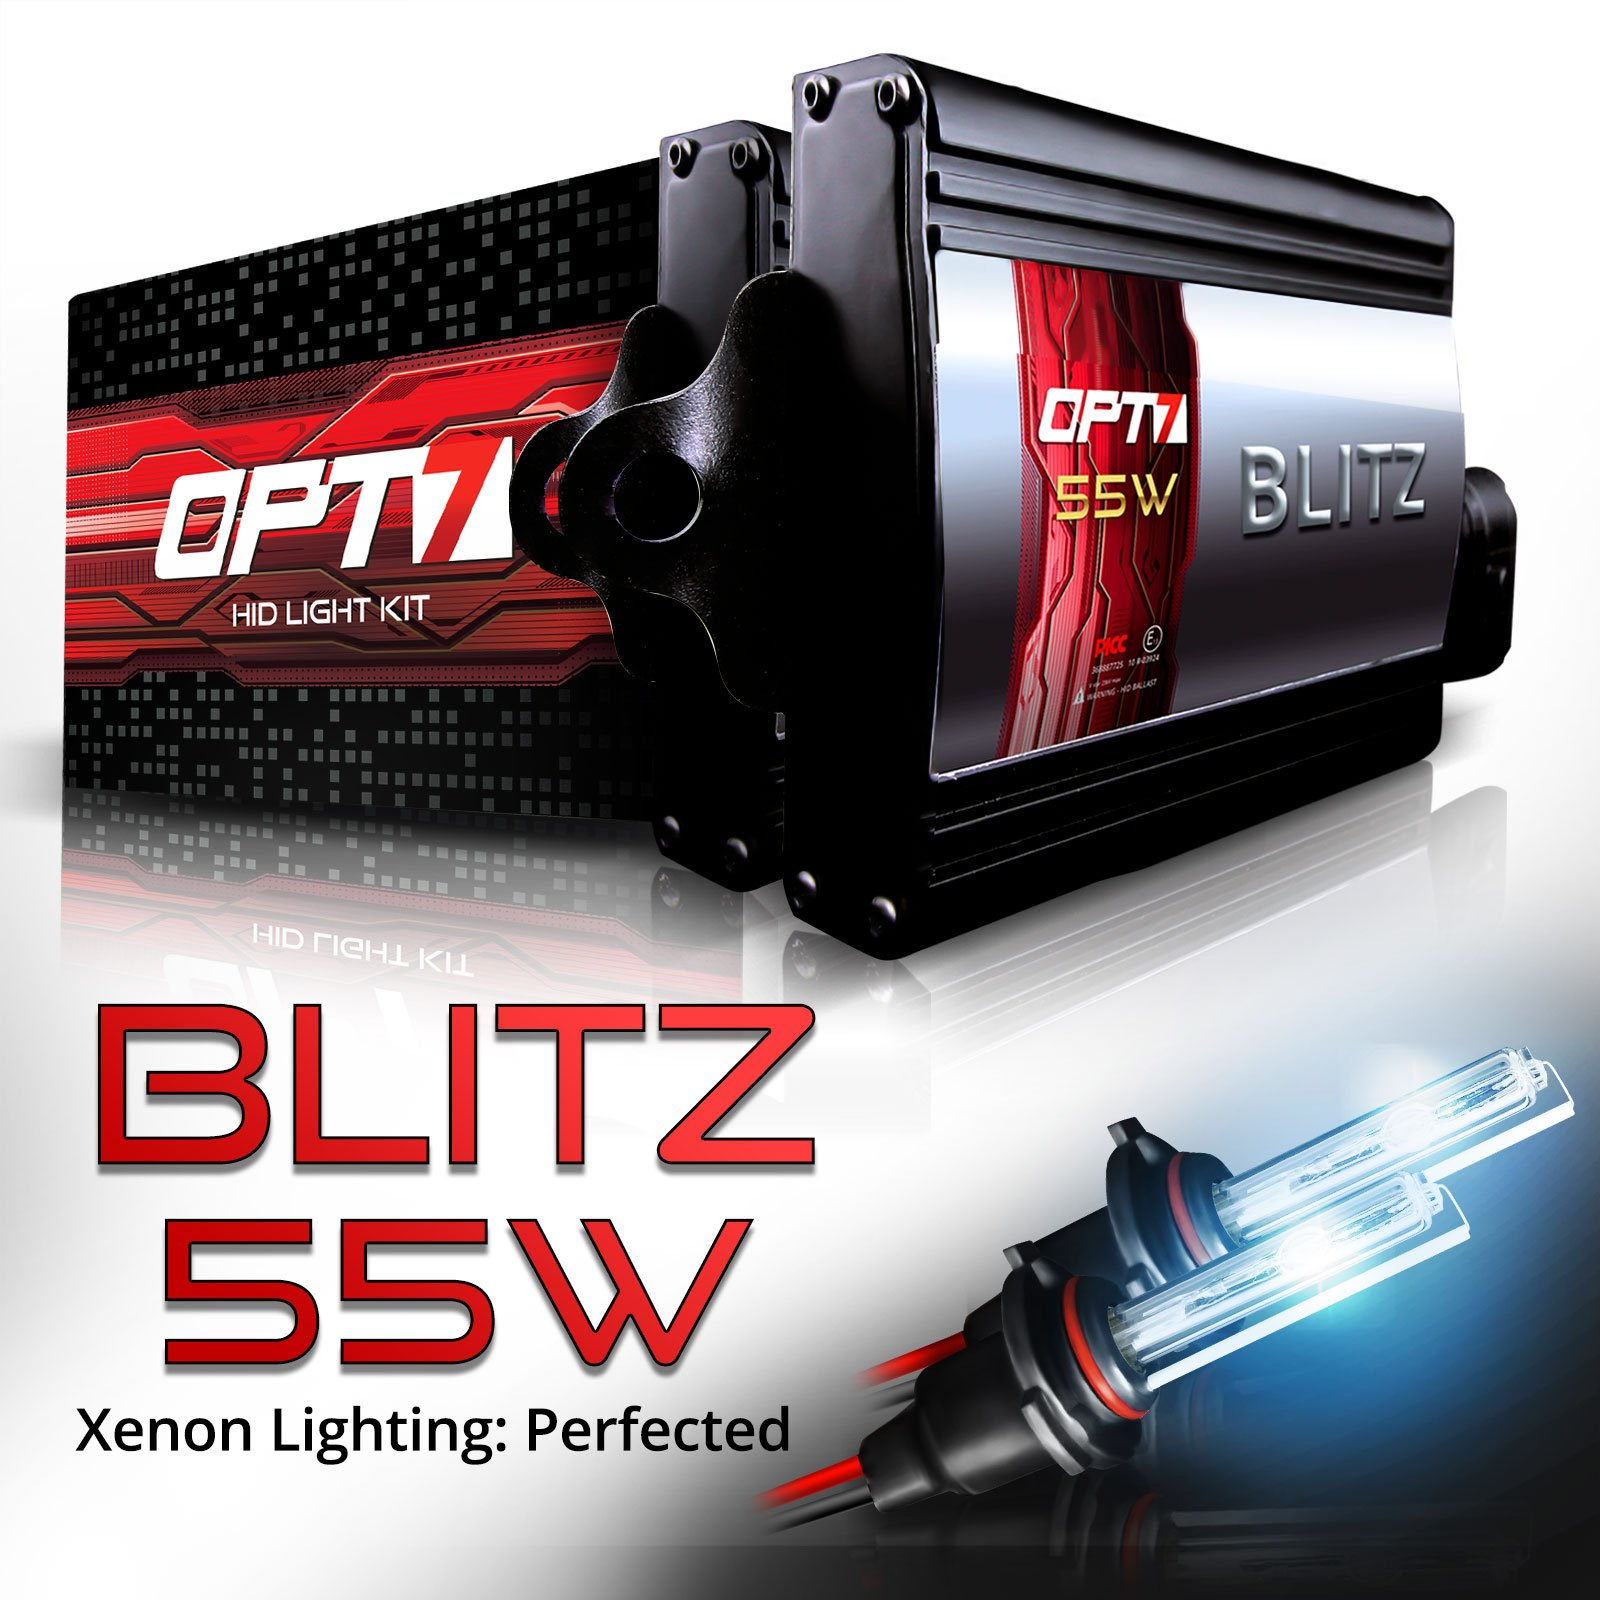 5X Brighter 2 Yr Warranty All Bulb Colors and Sizes 4X Longer Life 6000K Lightning Blue Xenon Light OPT7 Blitz 55W H3 HID Kit